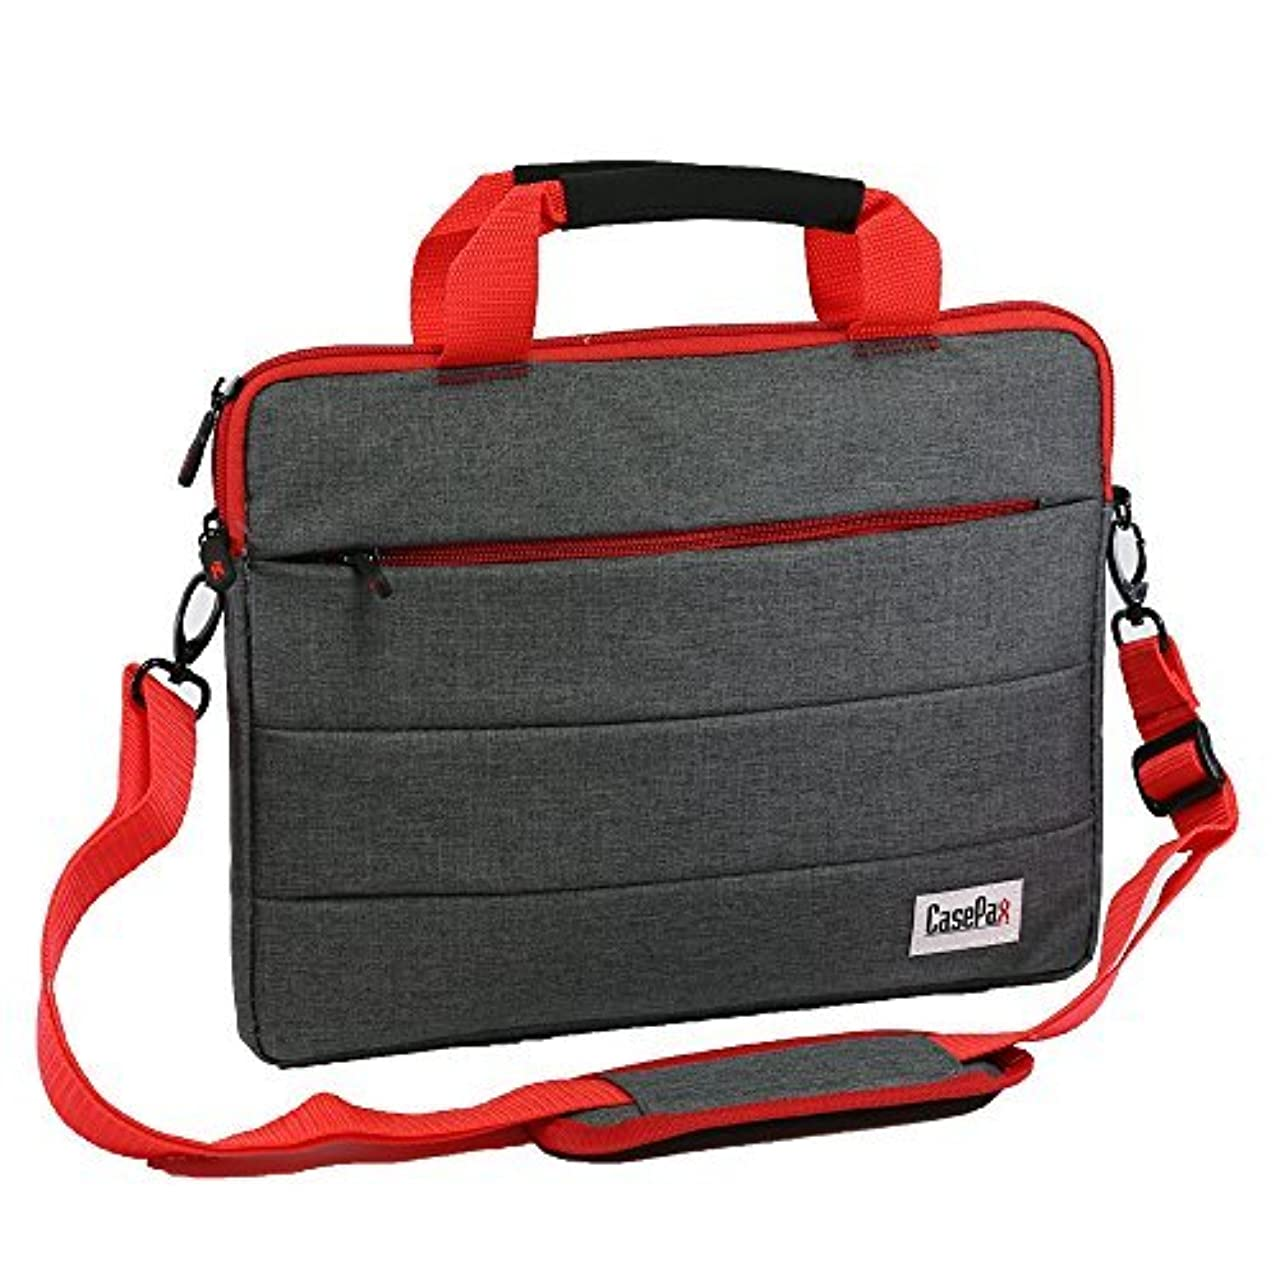 Casepax 12.1-Inch Laptop Computer Water-Resistant Shoulder Bag Case with BONUS Travel Accessories Pouch Case for Apple Asus Acer Lenovo Dell HP Notebook Chromebook Ultrabook MacBook, SL-713N-121 Red mphopoitxtohv584